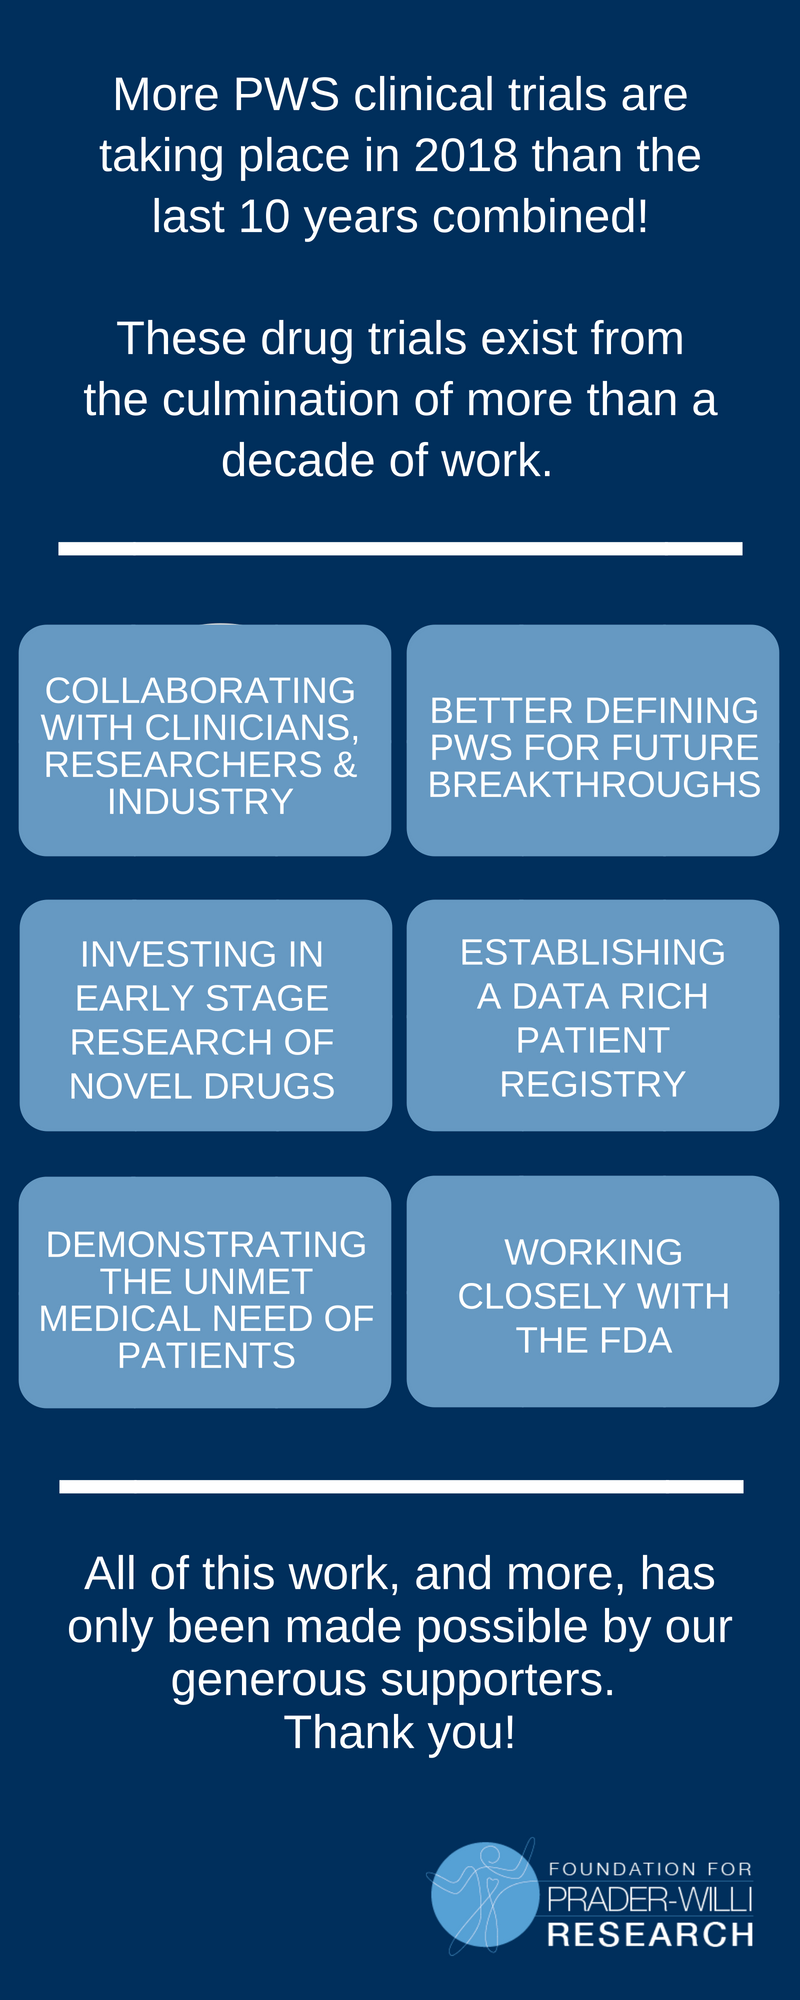 Why do we have so many PWS clinical trials?